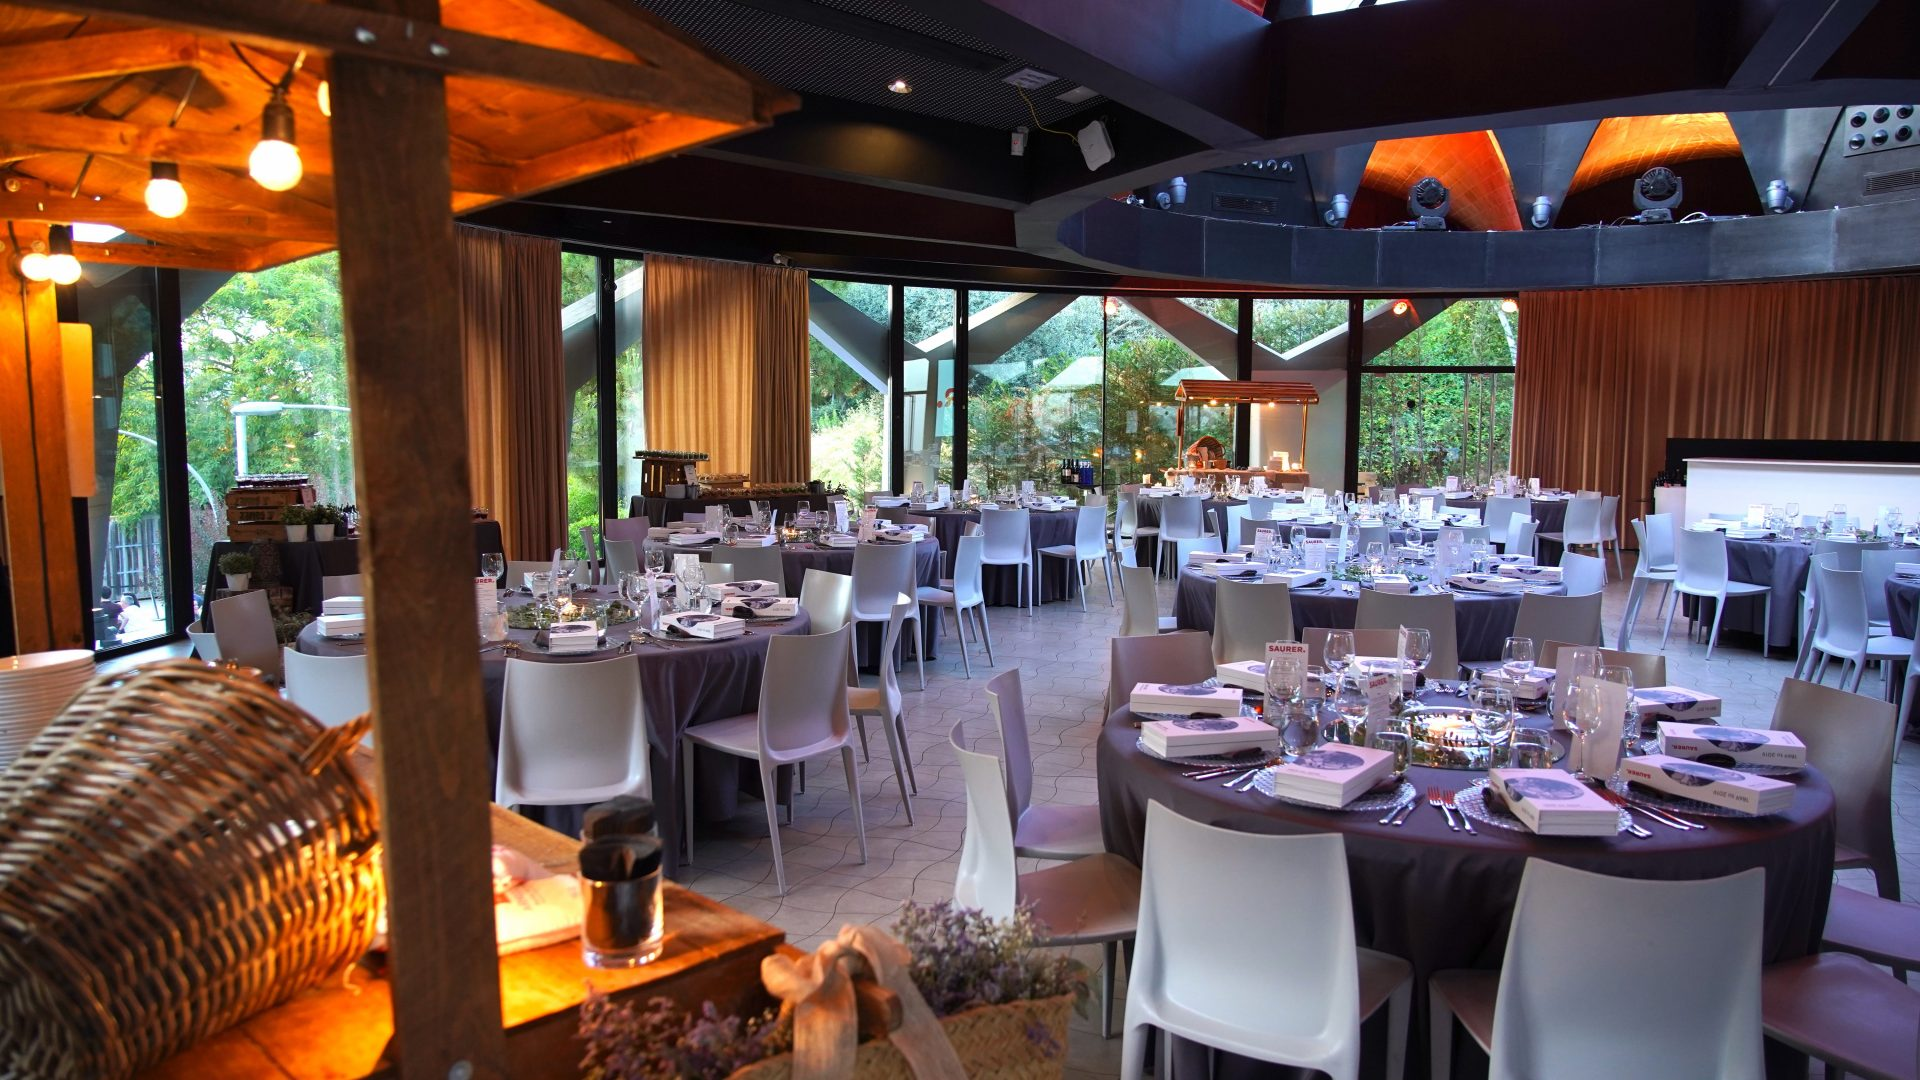 Gala dinner setup in event venue in Barcelona